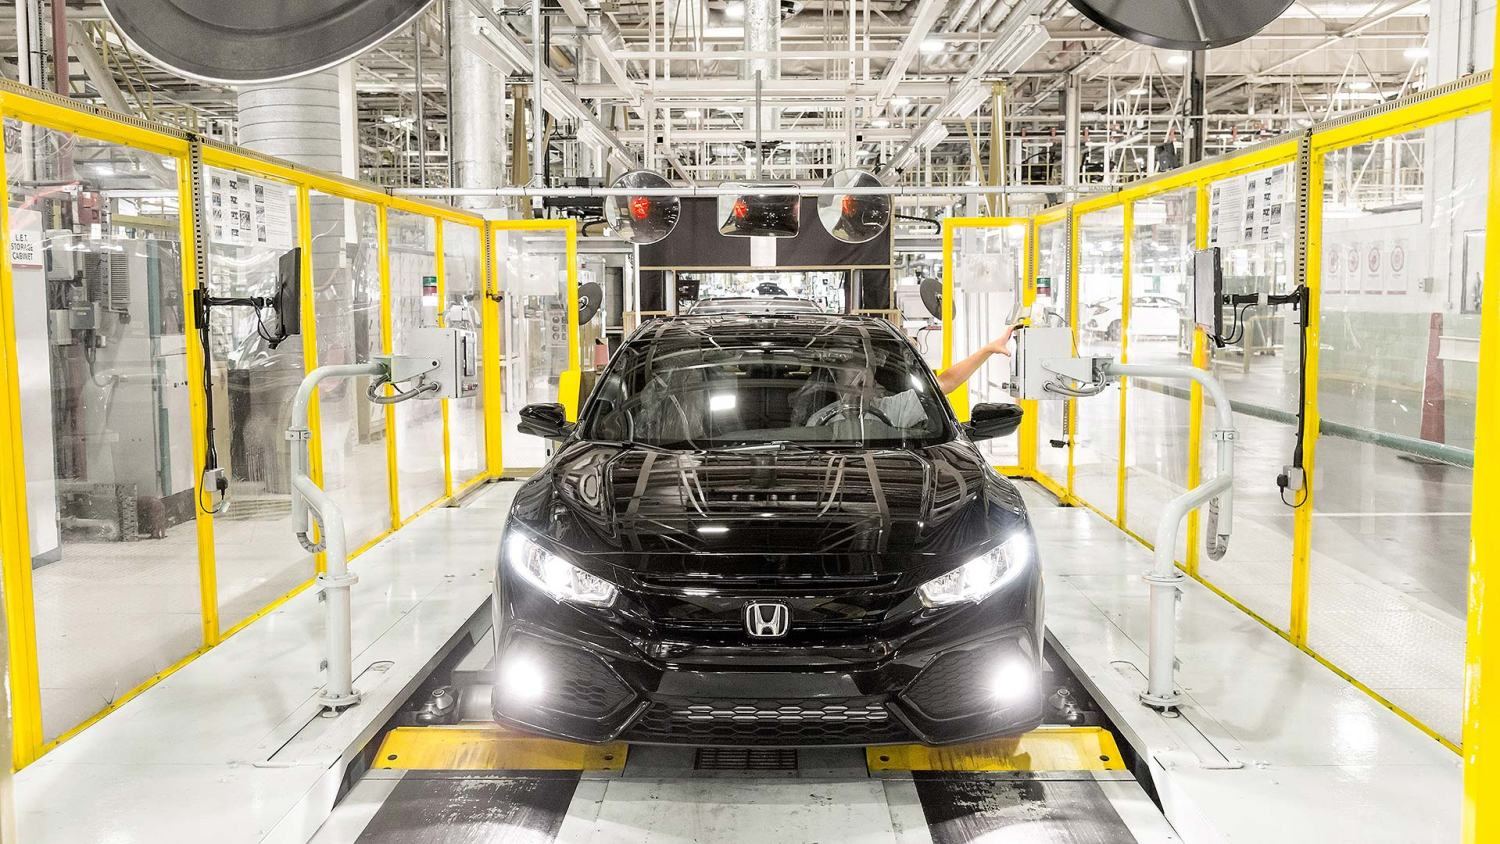 Honda Civic production line in Swindon